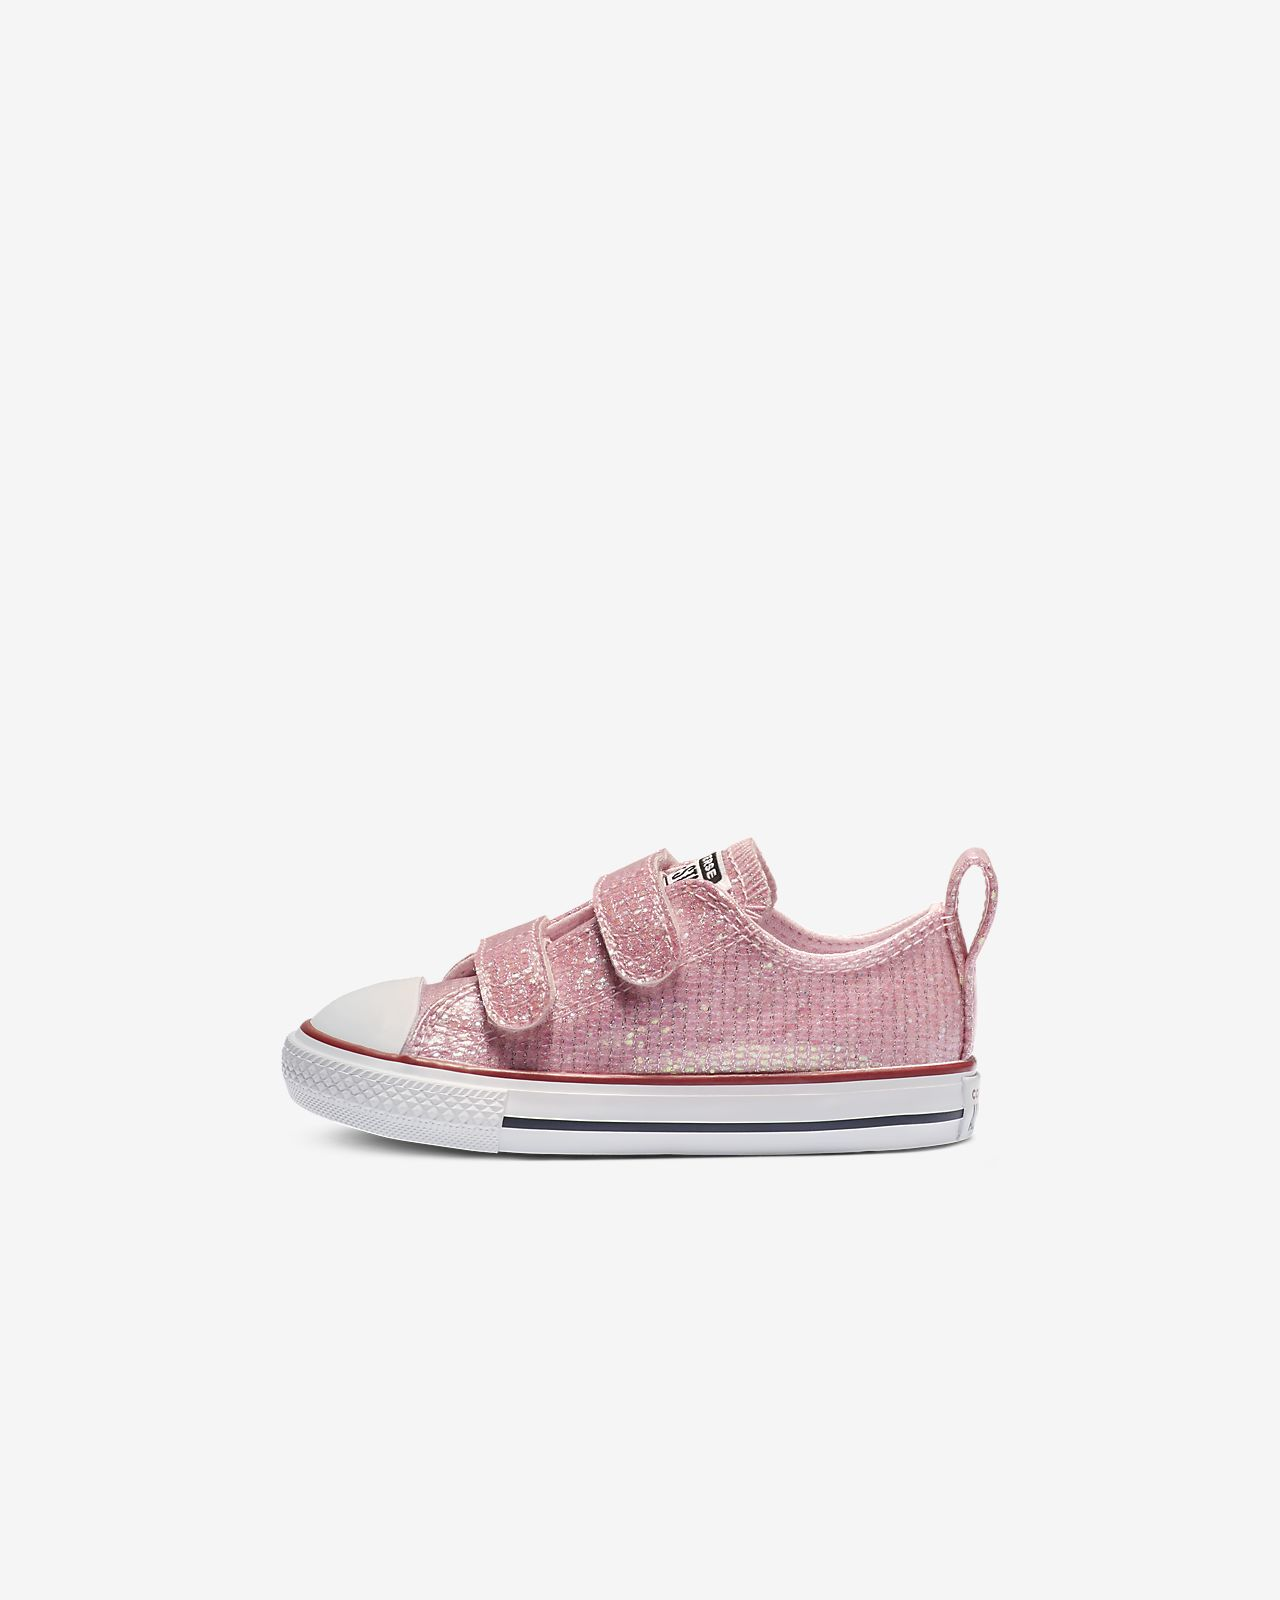 Converse Chuck Taylor All Star Hook and Loop Sparkle Low Top Toddler Shoe